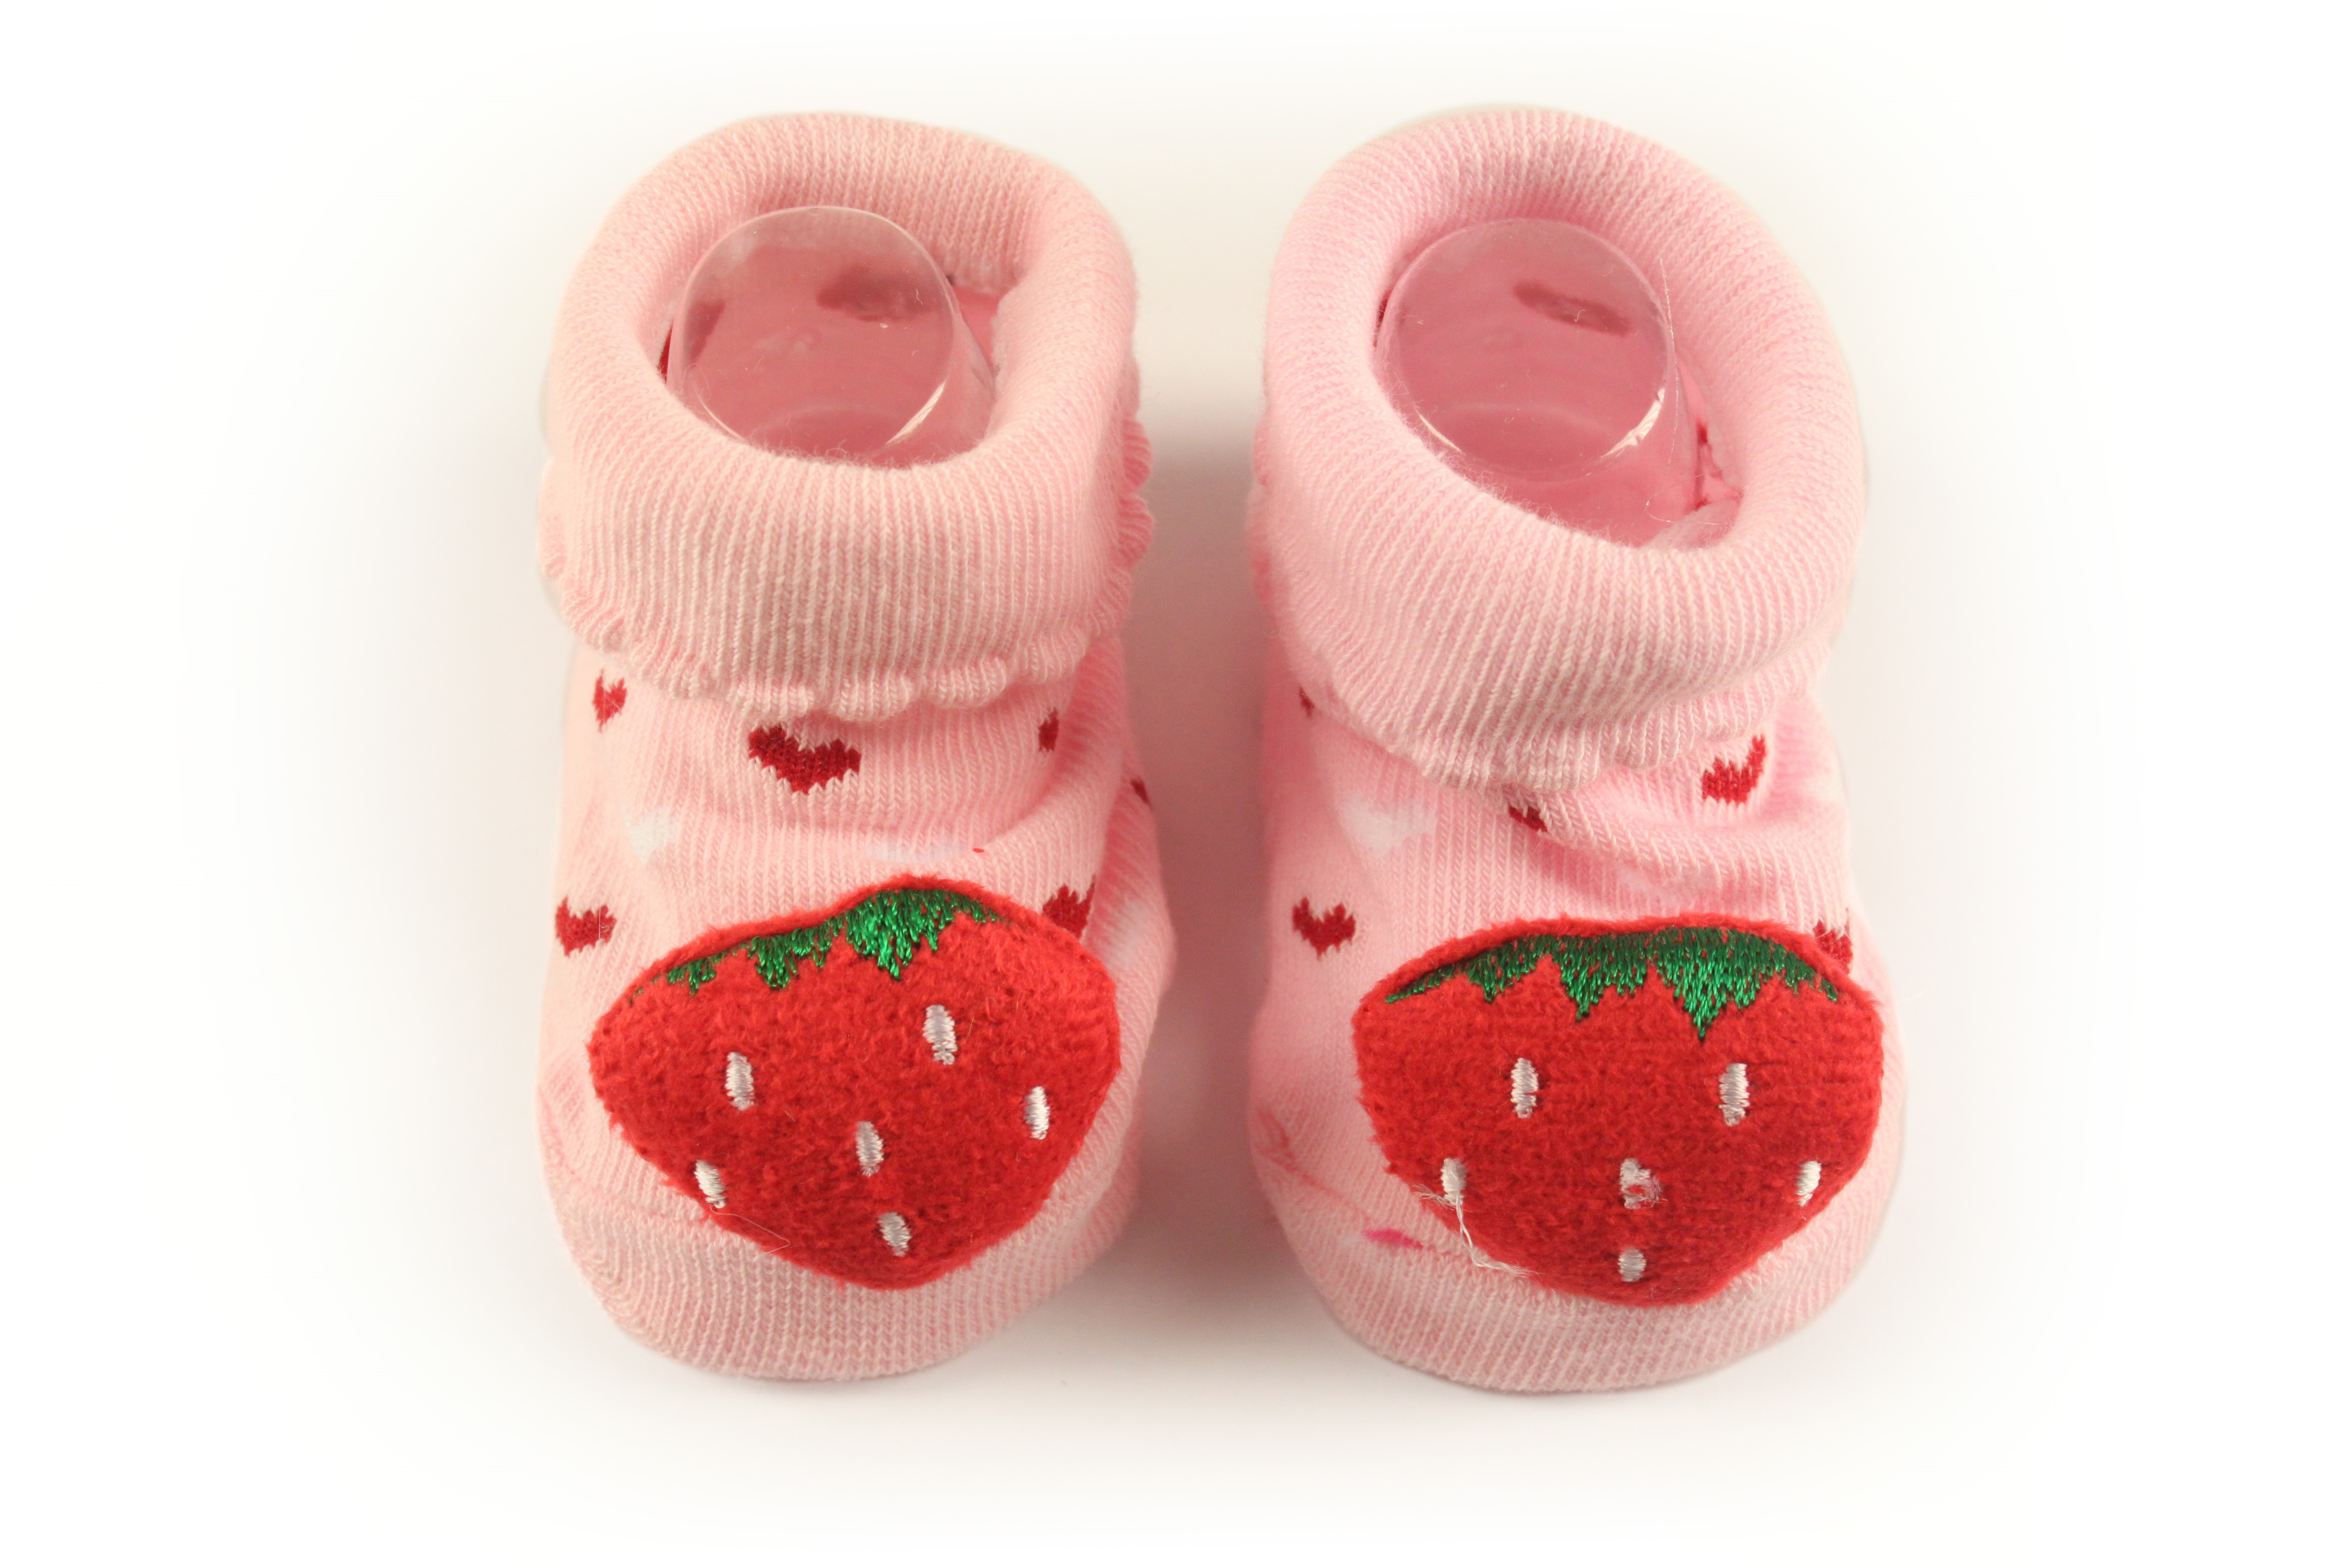 Lasin Baby Boy Cartoon Anti-slip Socks -Strawberry (0-12M)